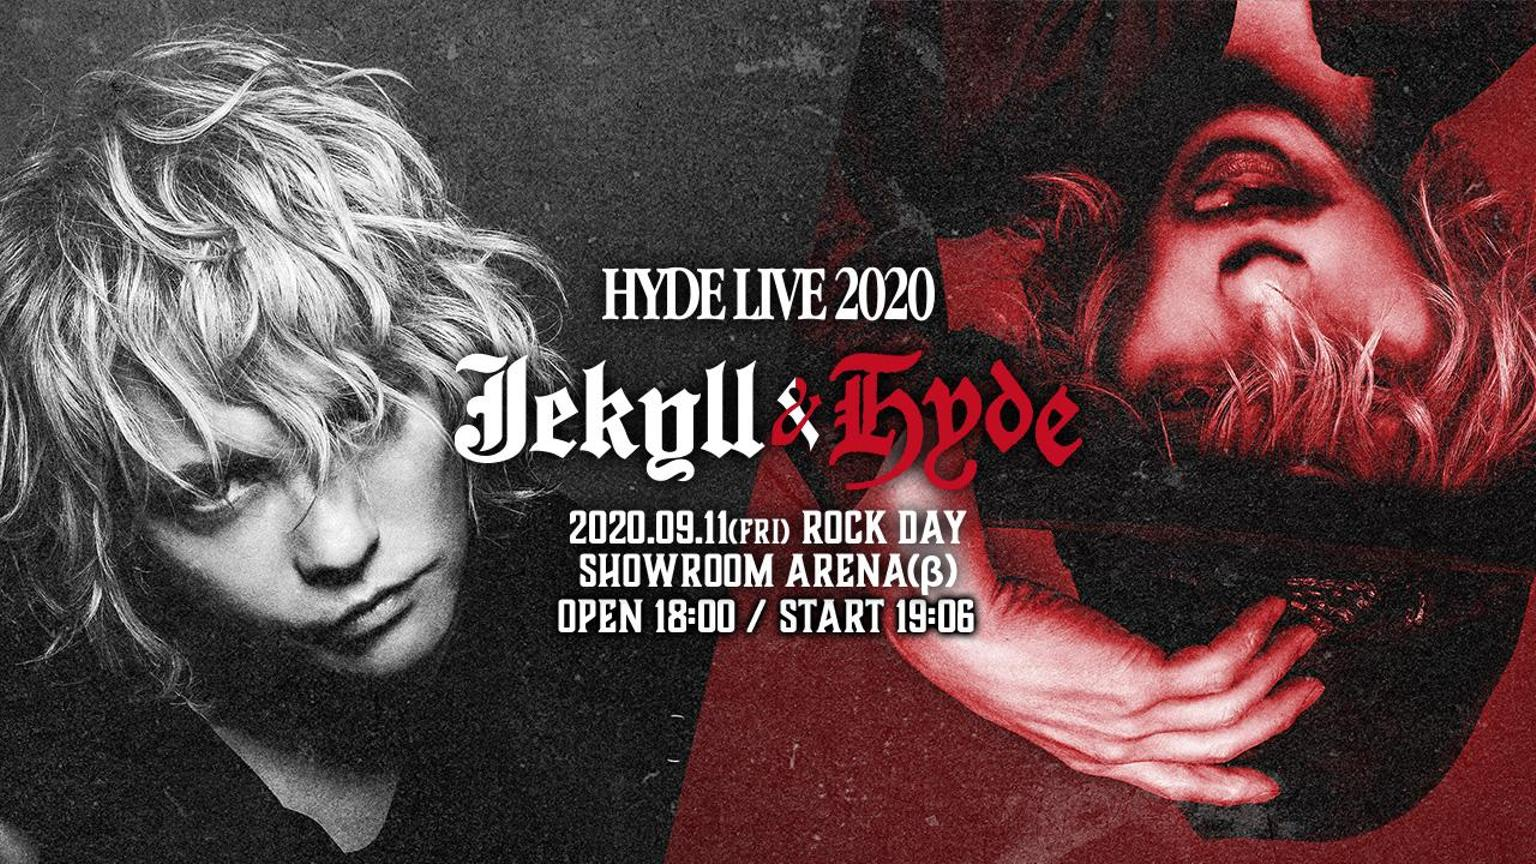 HYDE LIVE 2020 Jekyll & Hyde